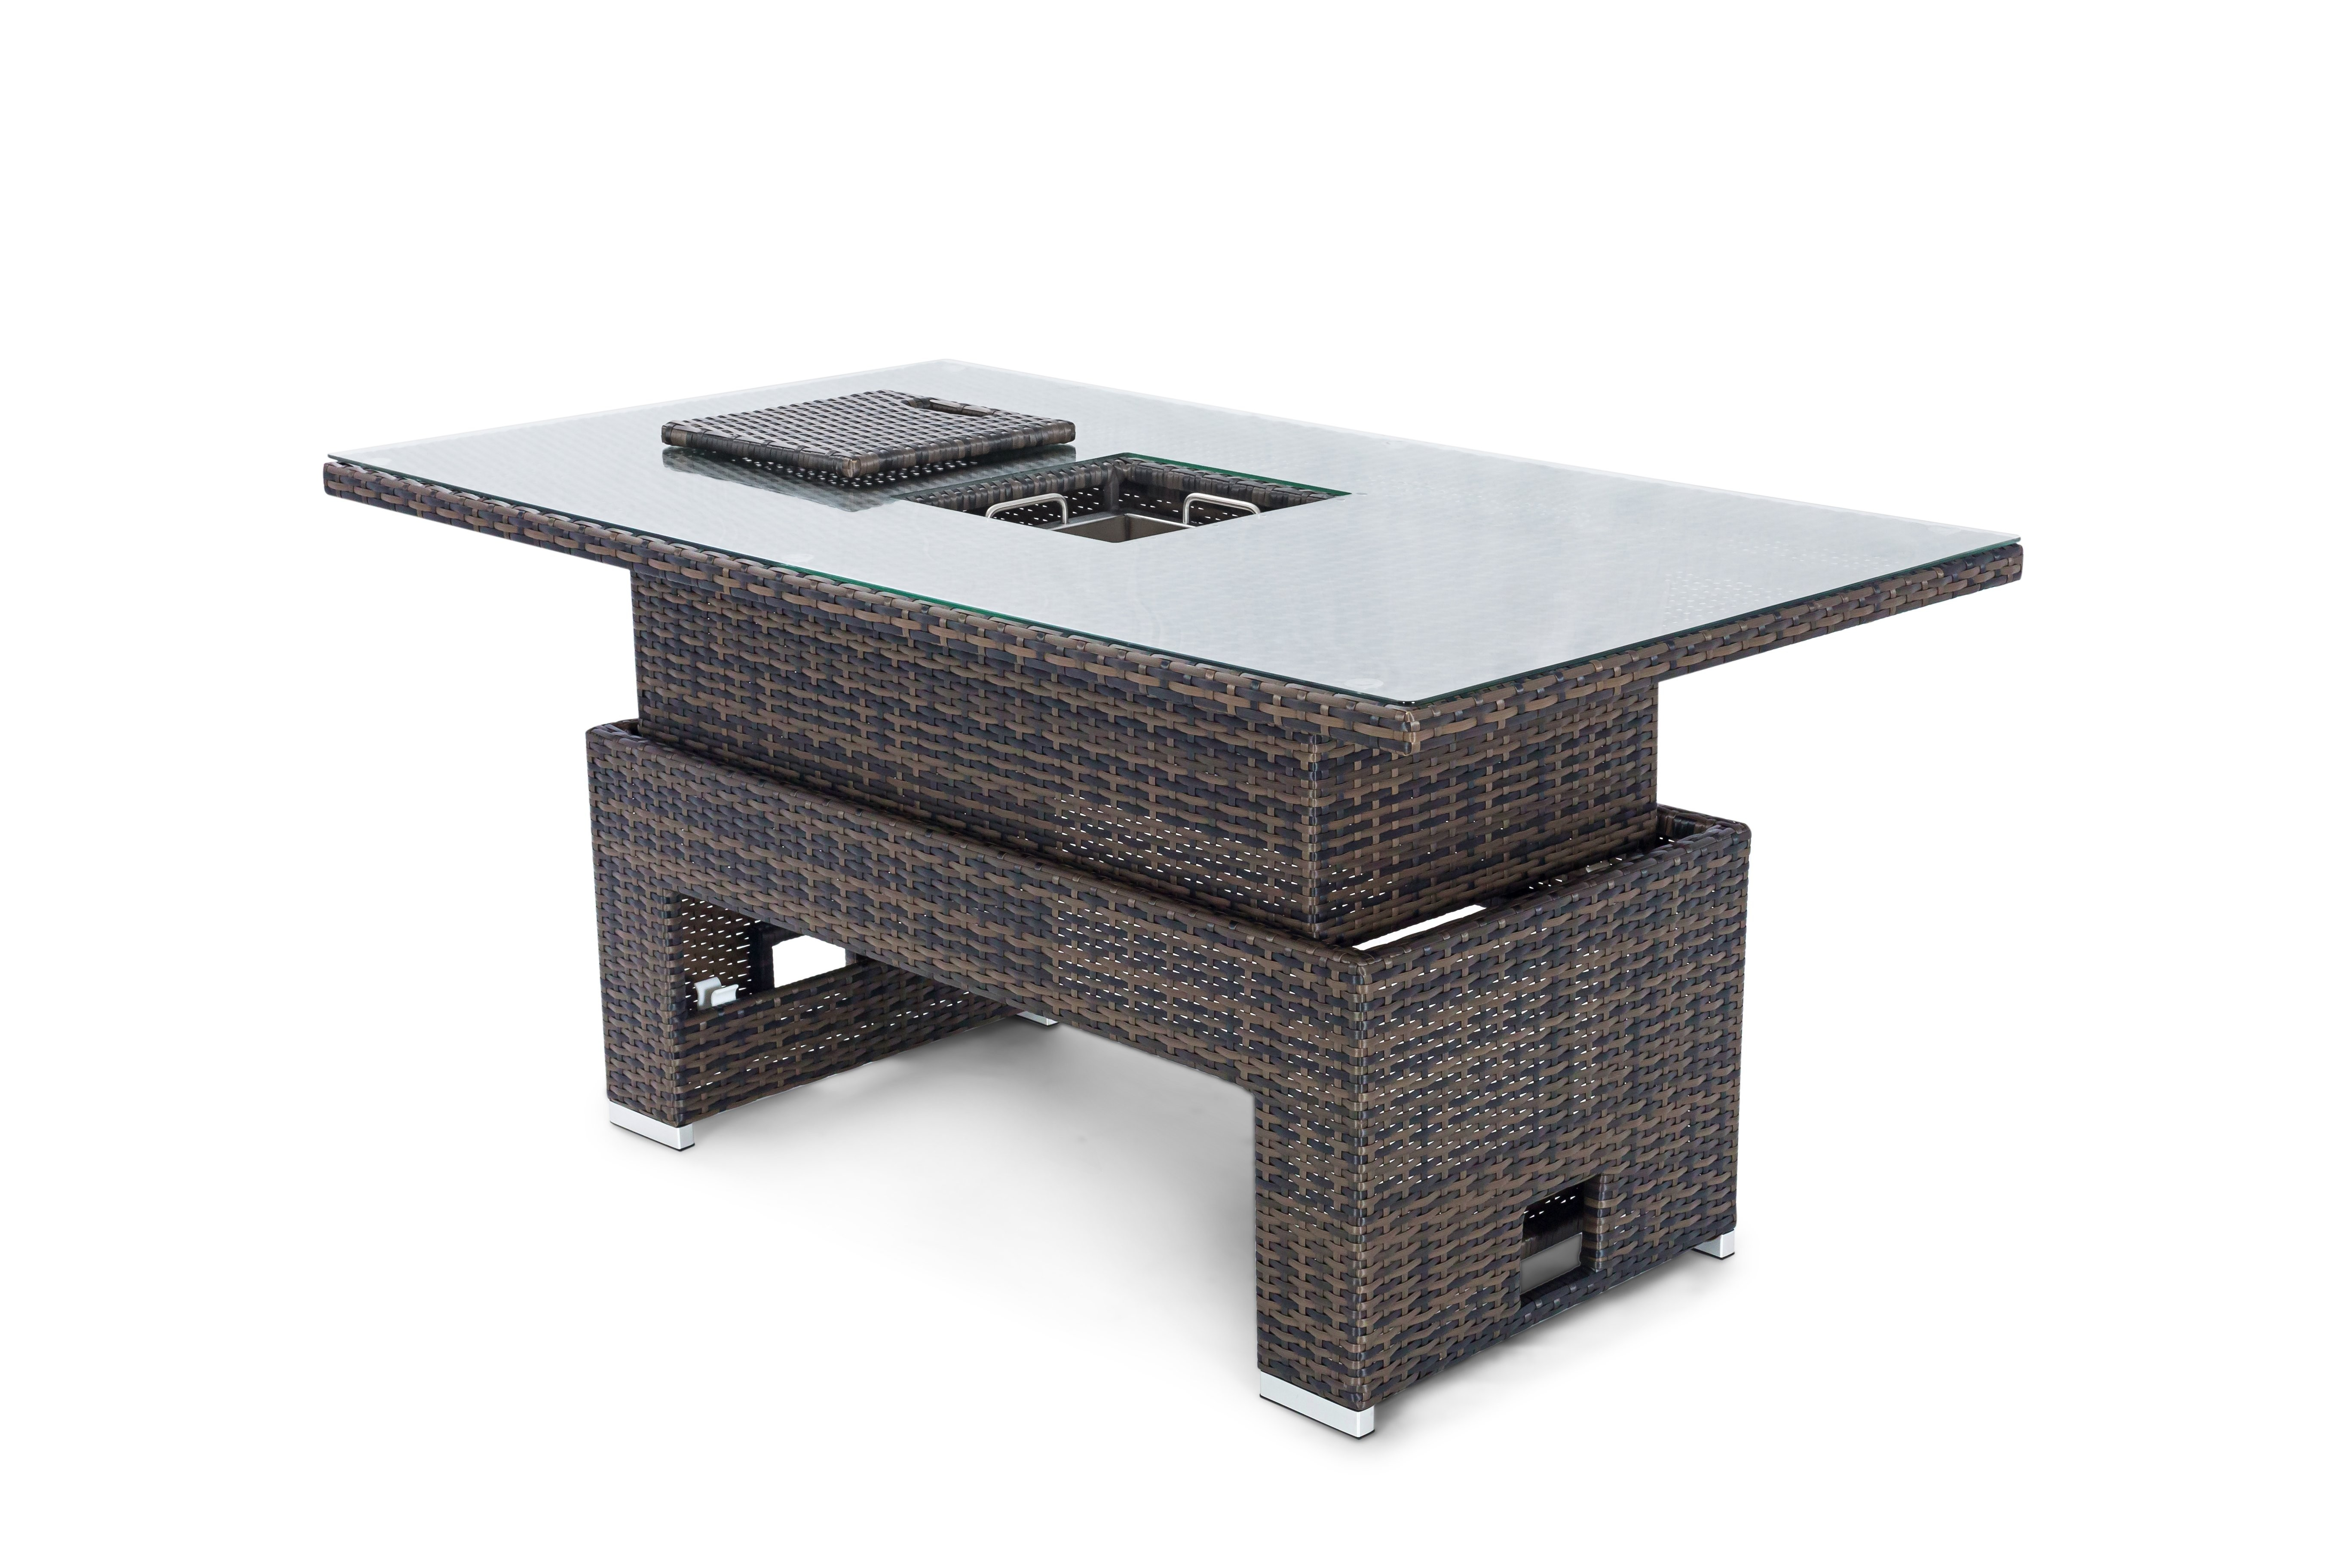 elevating_table_with_ice_bucket-_brown_flat_weave_1_ Impressionnant De Table Transformable Concept